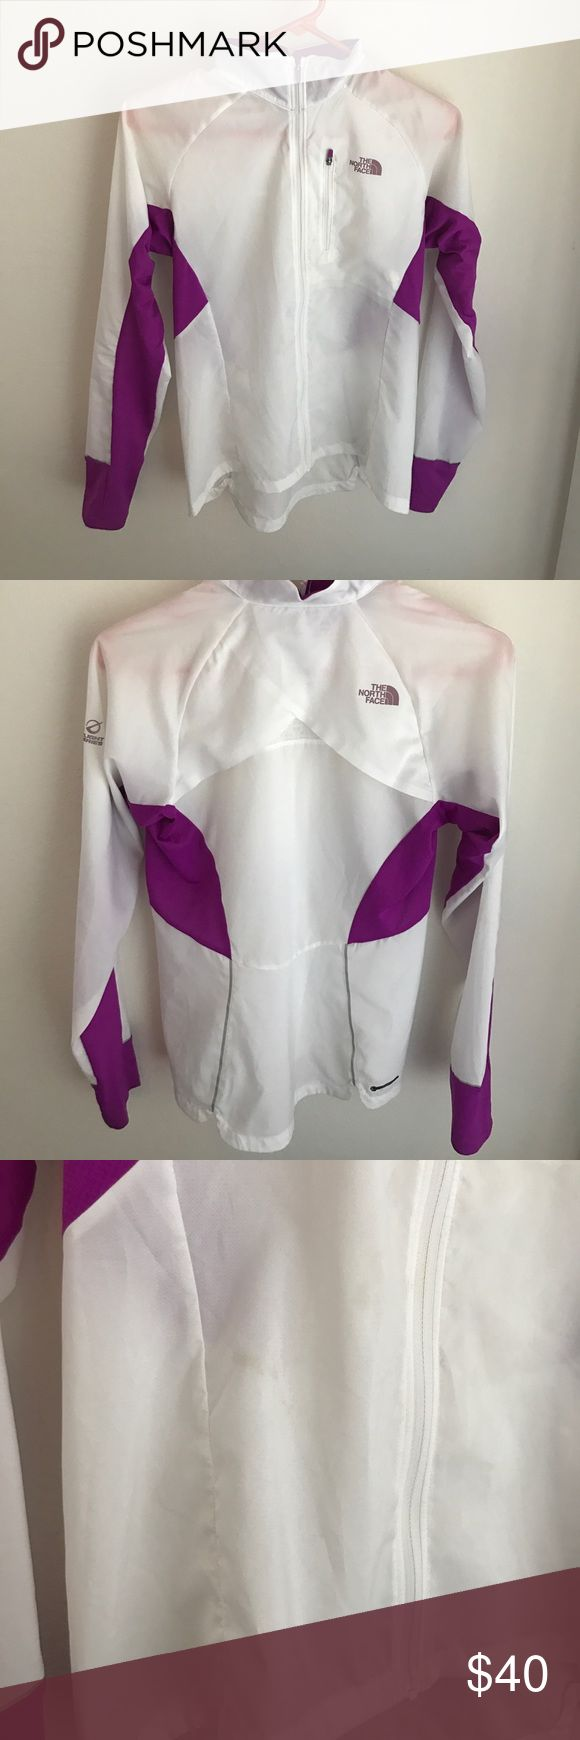 Northface women's running top XS North Face Womens XS, purple and white running jacket. Lightly worn - only about 5x. Does have some light stains on the front in full transparency, see pics North Face Jackets & Coats Utility Jackets